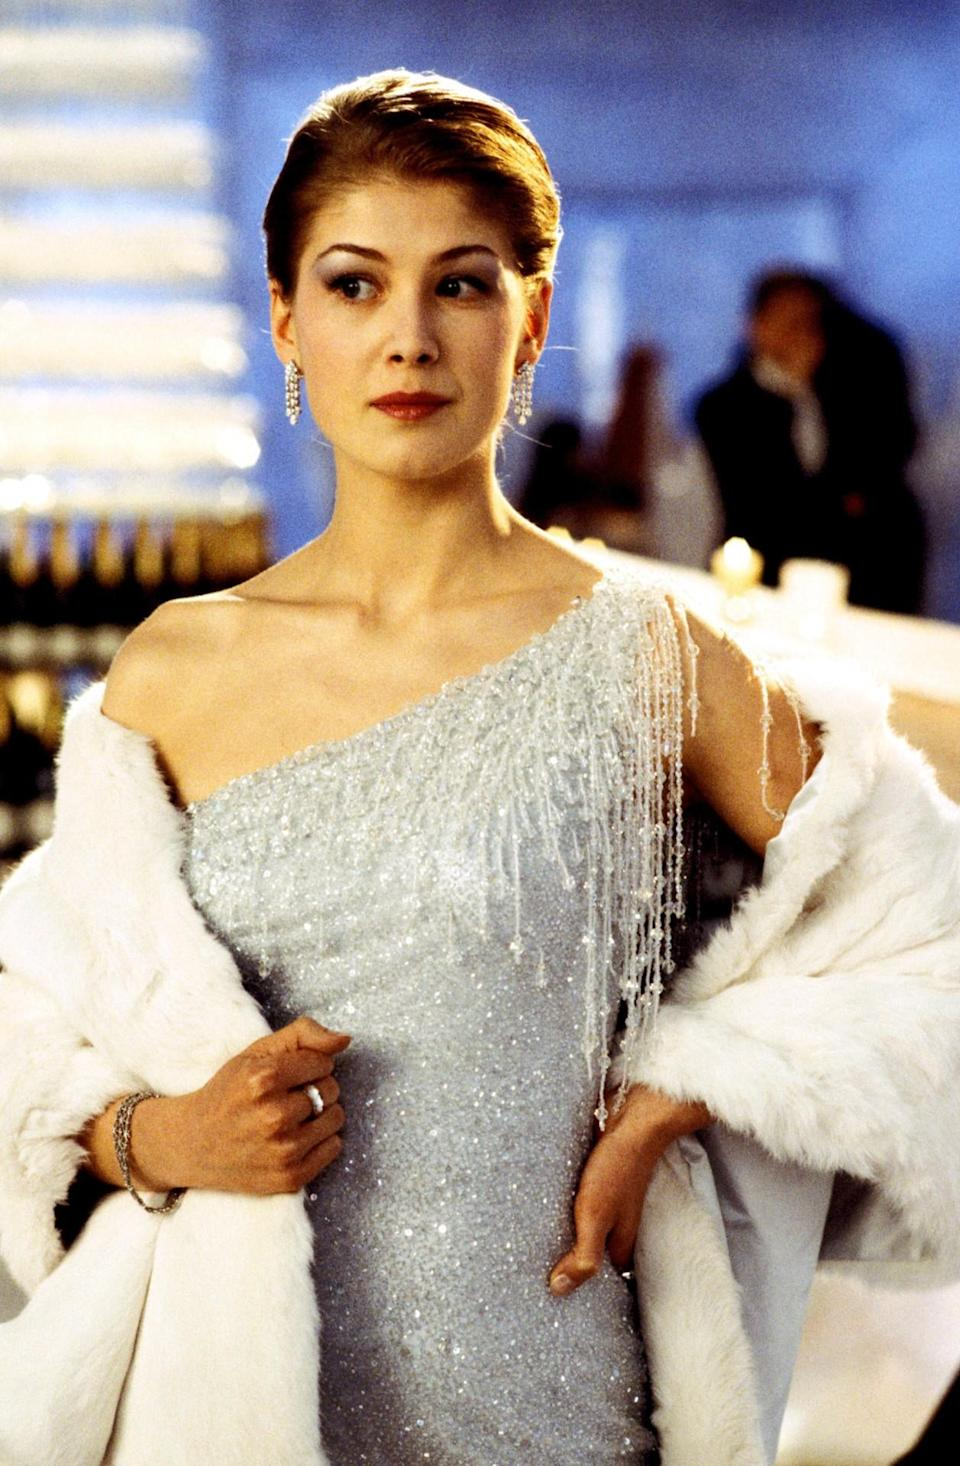 <p>Long before <i>Gone Girl</i>, Pike played an undercover MI6 agent. Her name is Frost — can't you tell by her icicle-themed gown and silver shimmery eyeshadow? But she's also double agent who betrays Bond. Don't worry — she gets hers. <i>(Photo: Everett Collection)</i></p>